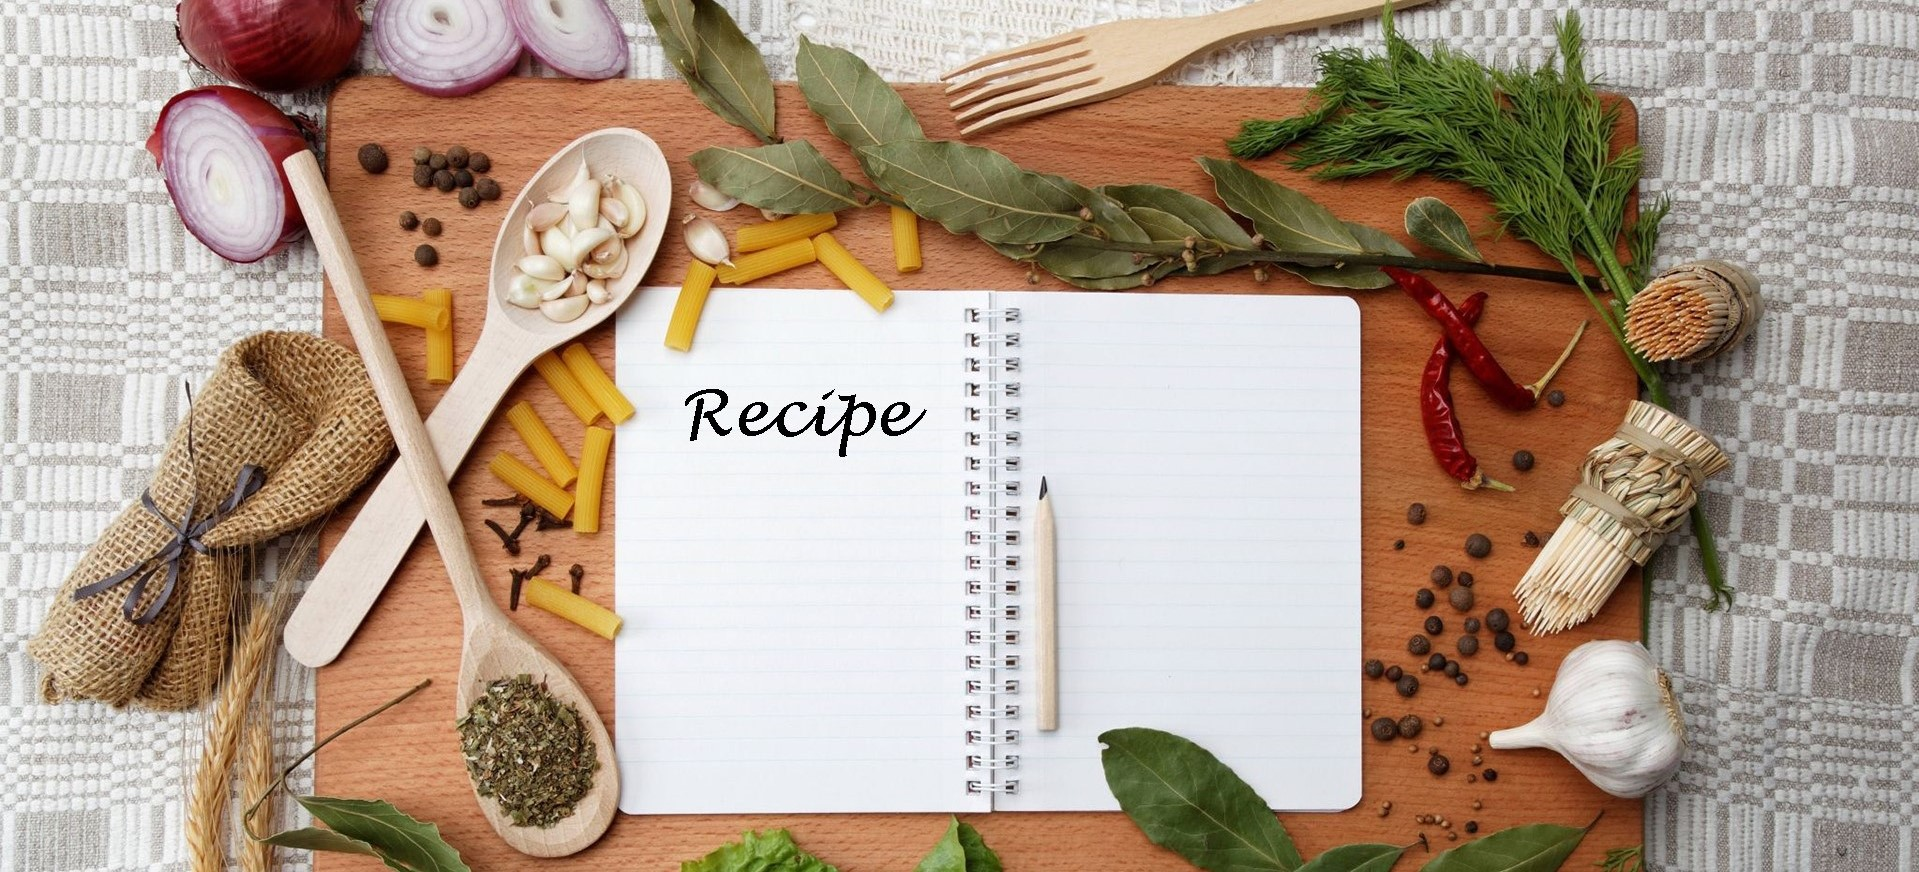 Organize Your Recipes Smarter: For individual and businesses